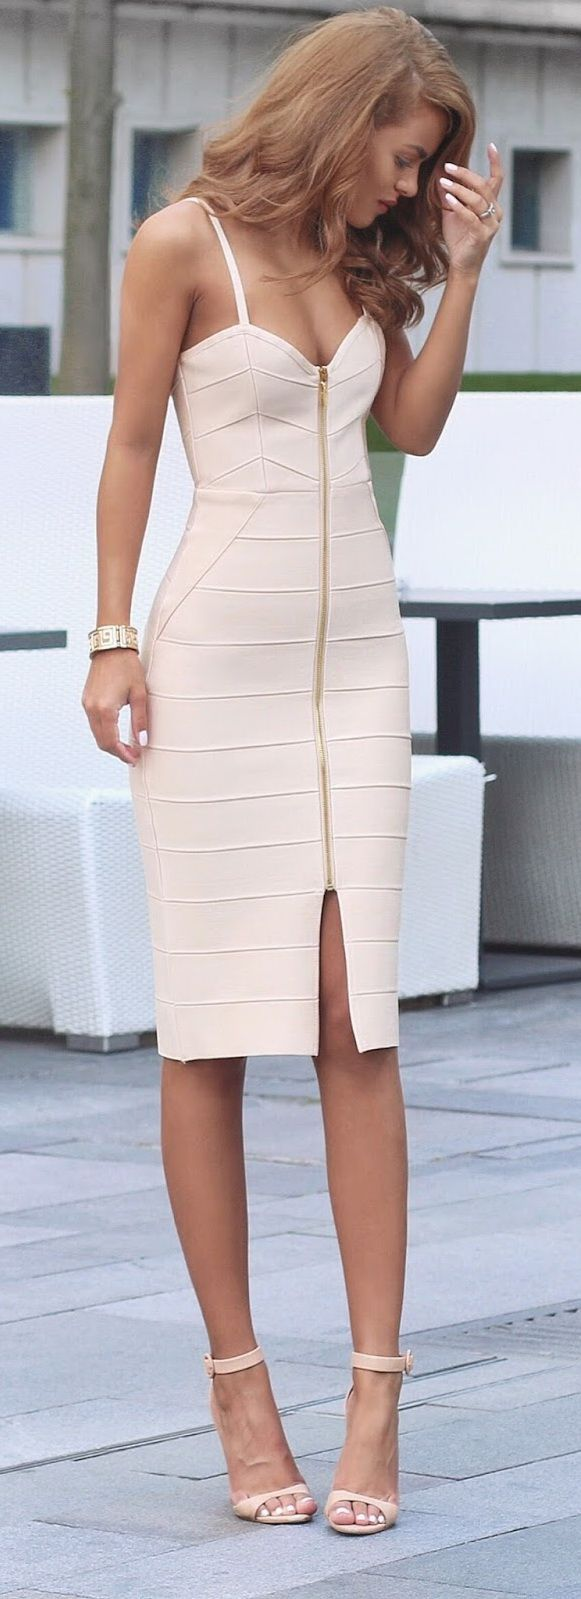 Nude and Blush Cocktail & Party Dresses | Nude strappy heels, Nude ...